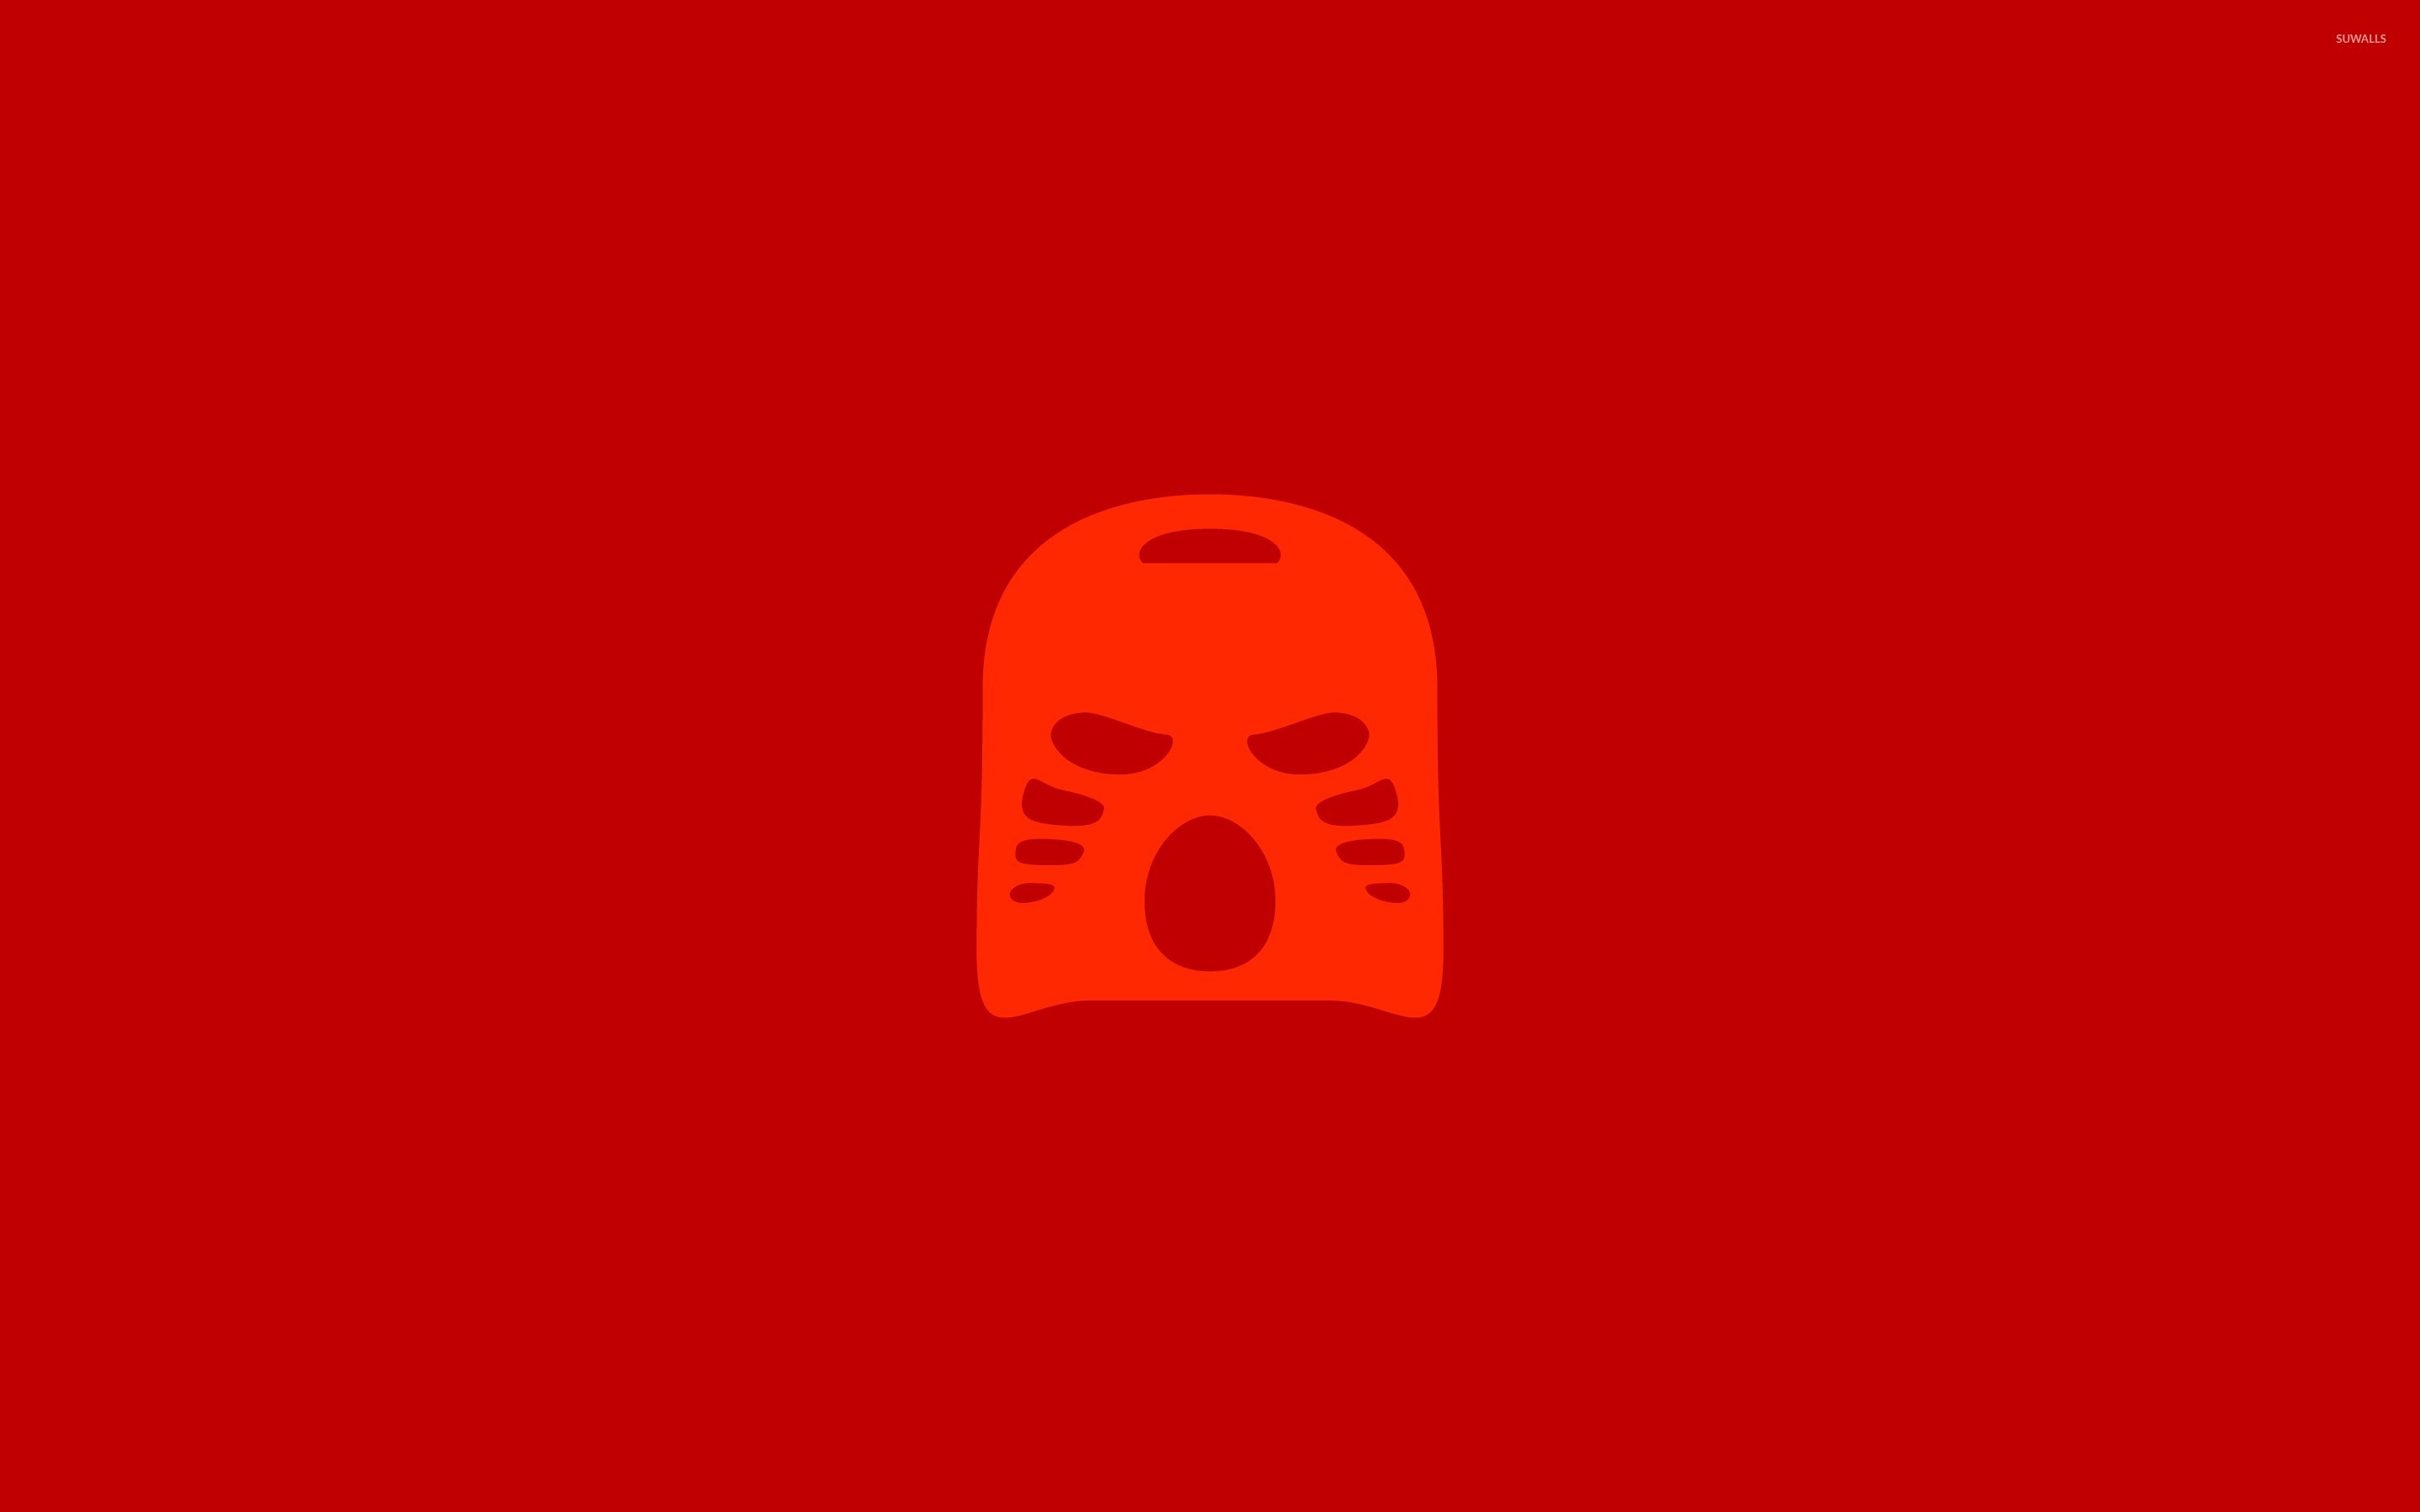 Red Bionicle Lego Mask Wallpaper